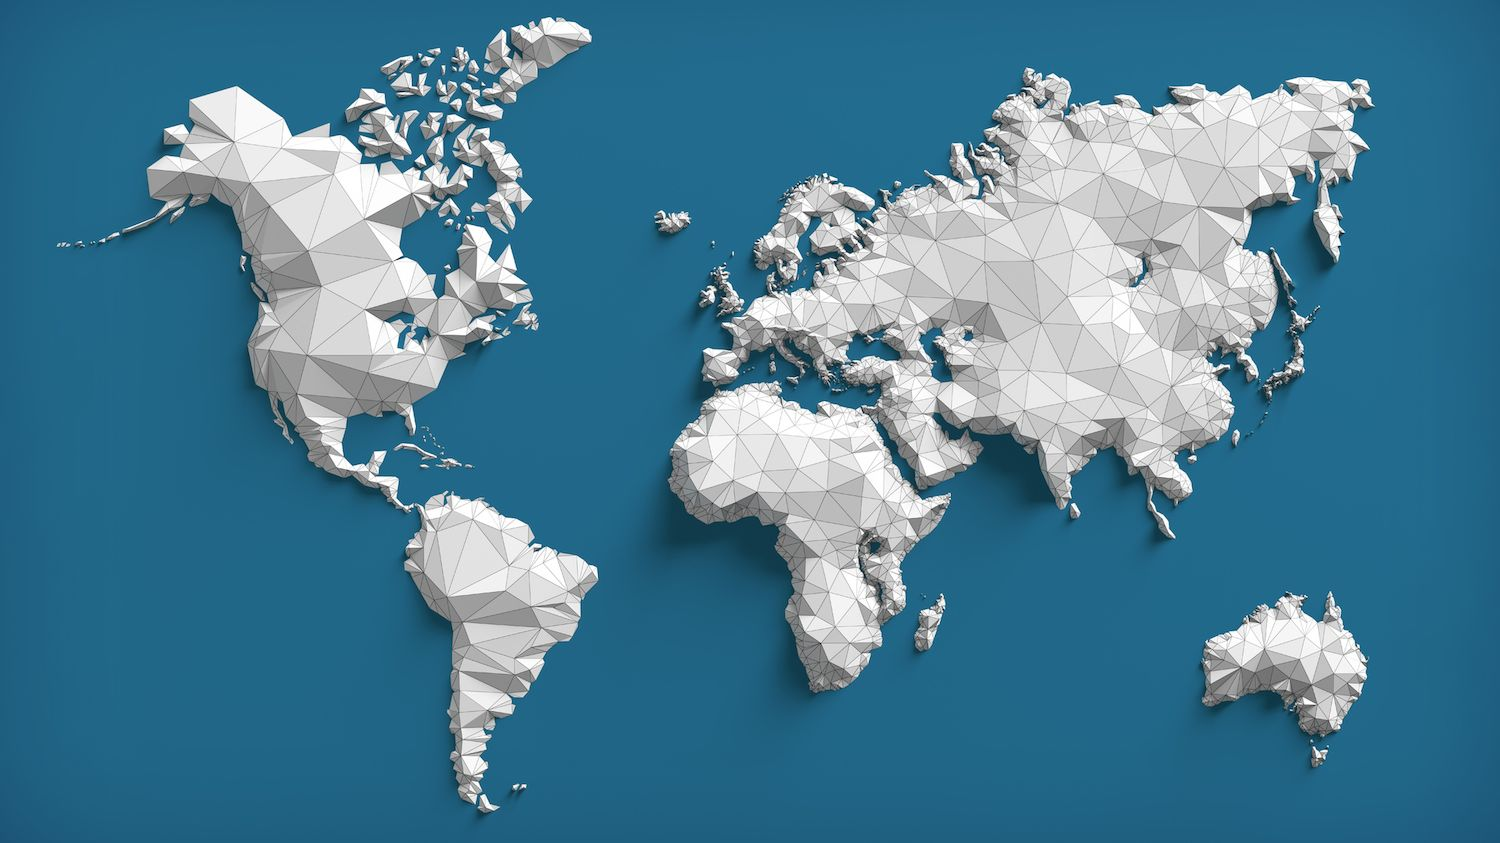 Show Me A Map Of New Zealand.New Zealand Is Tired Of Being Left Off World Maps Including